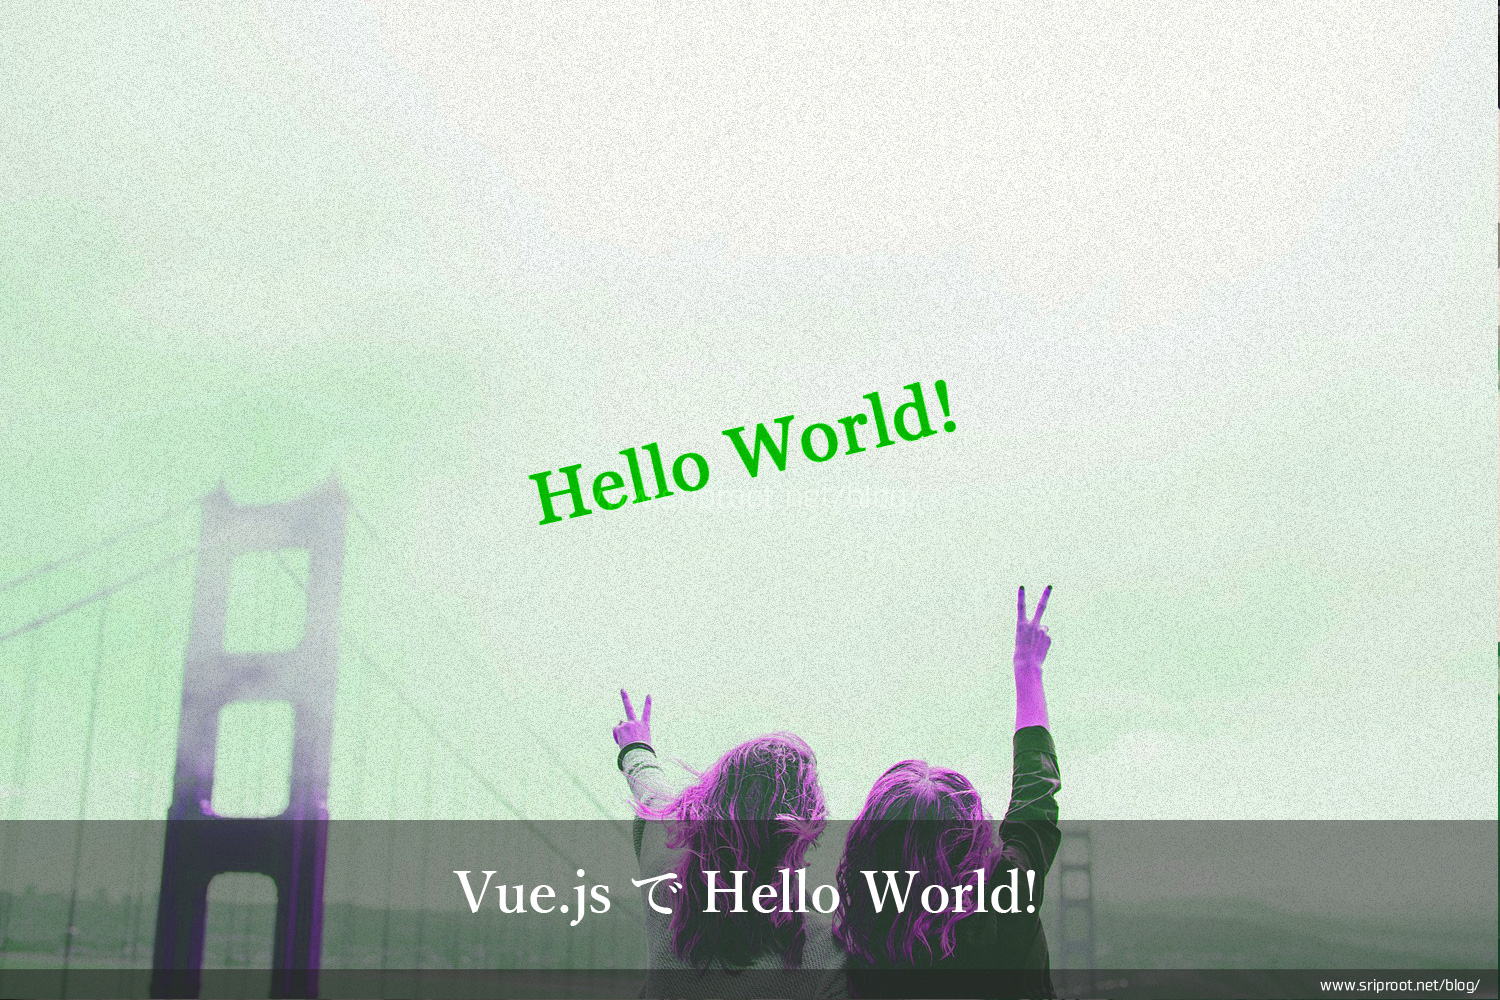 Vue.jsでHello World!